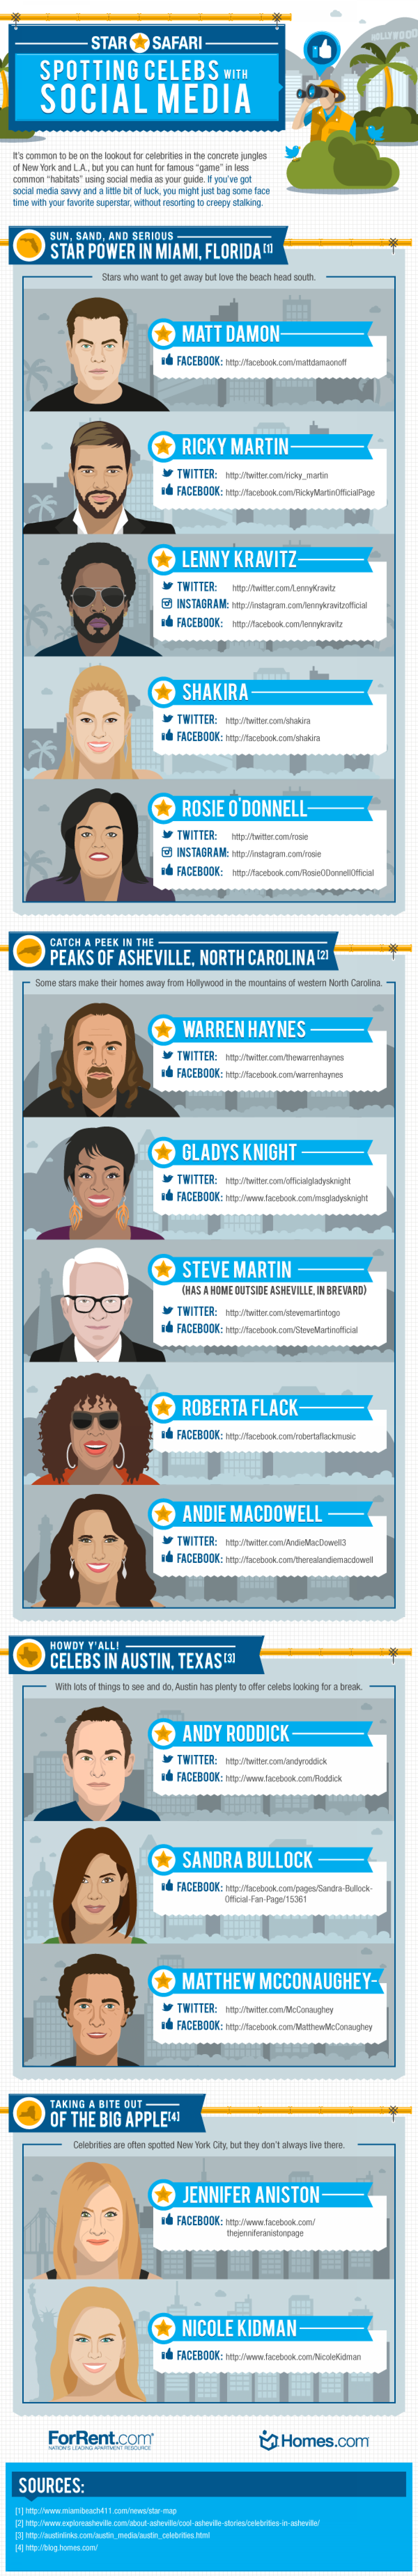 Star Safari: Spotting Celebs with Social Media Infographic